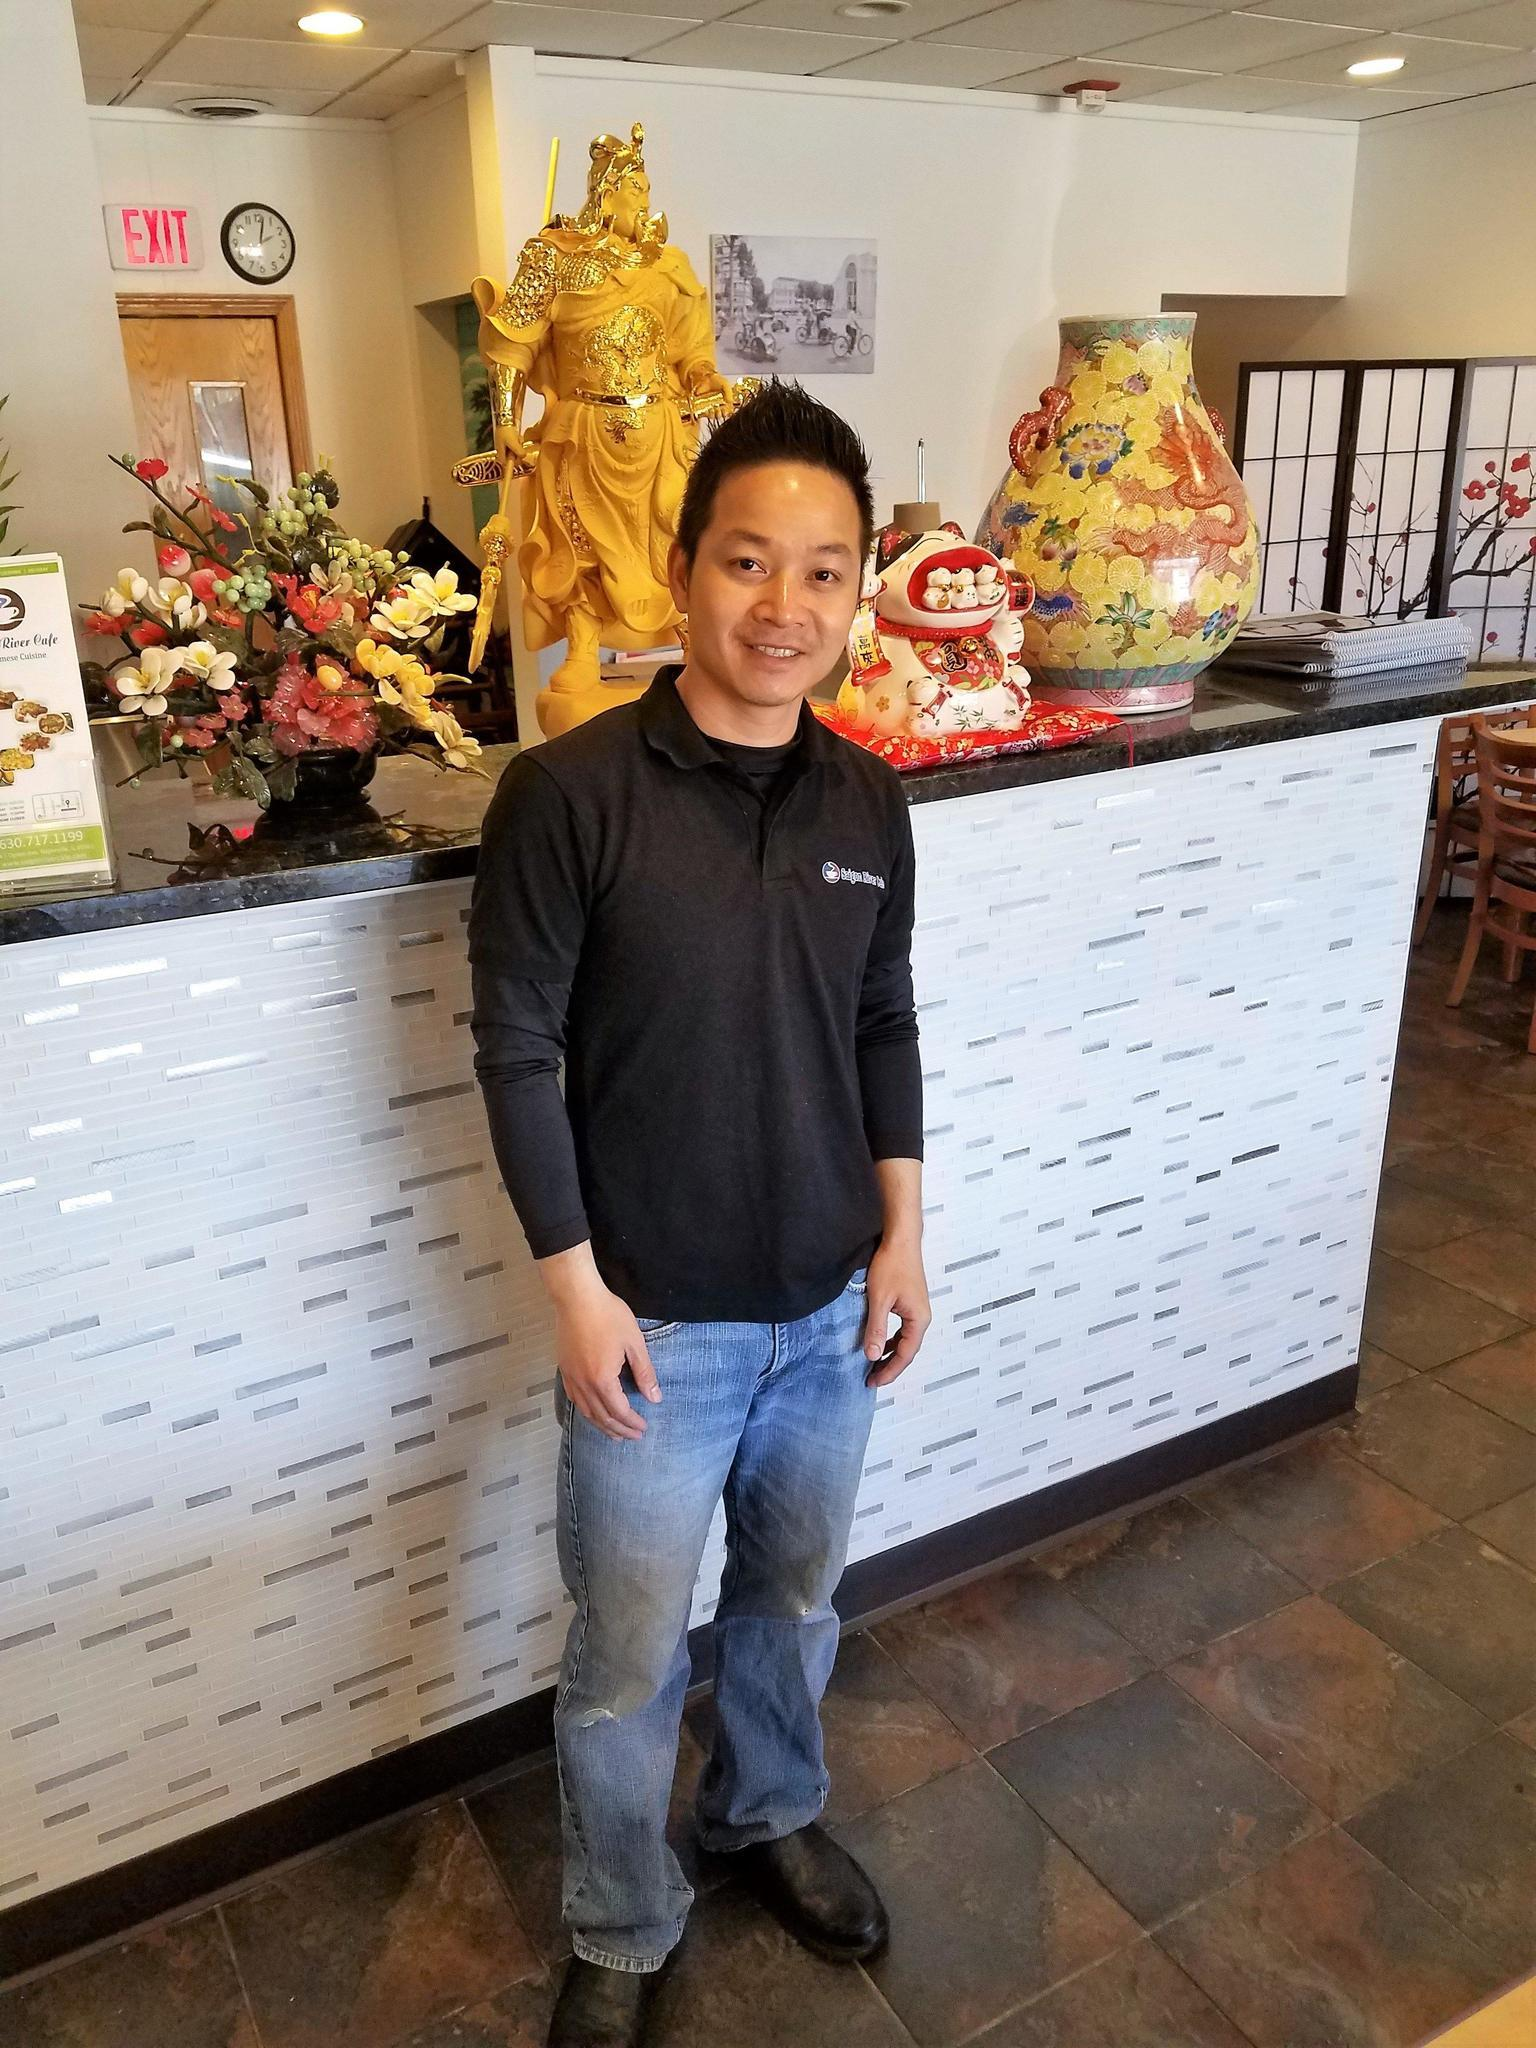 Chef's Choice: Vietnamese chef hoping to win fans with healthy cuisine